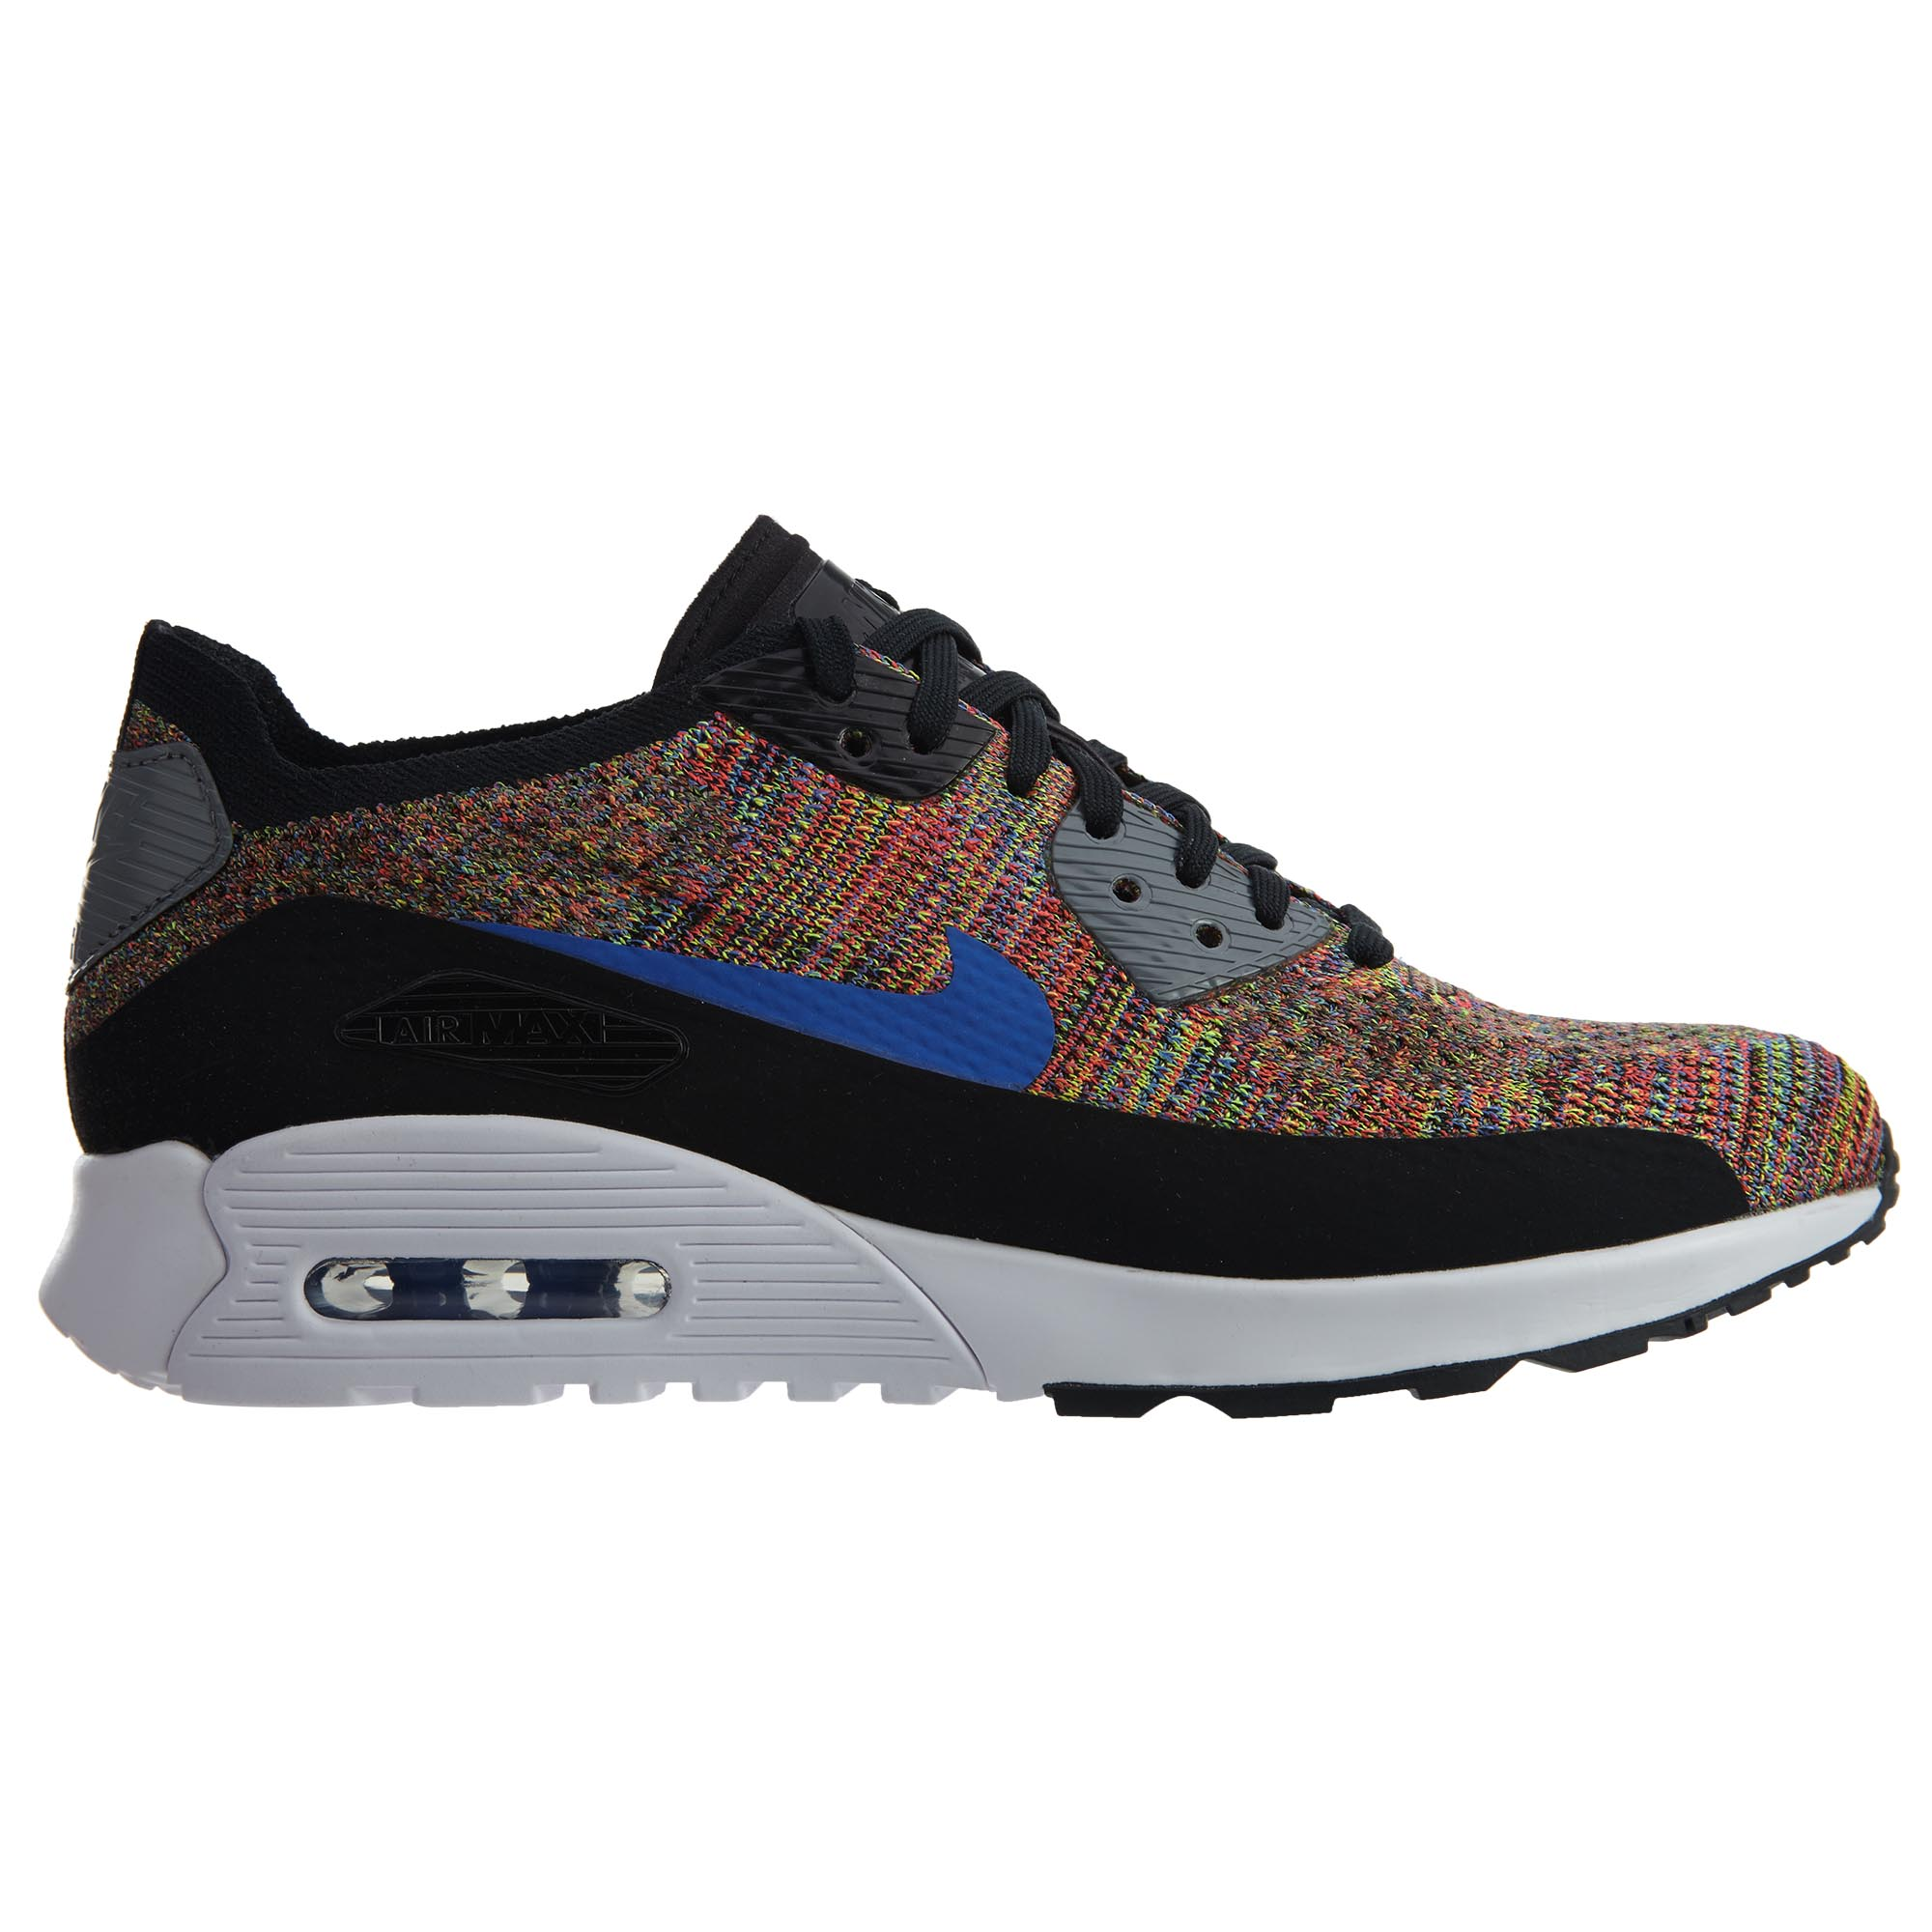 NIKE (Nike) AIR MAX 90 ULTRA 2.0 FLYKNIT (Air Max 90 ultra fly knit) MENS sneakers COLLEGE NAVYCOLLEGE NAVY (navy) 875943 401 ENDLESS TRIP